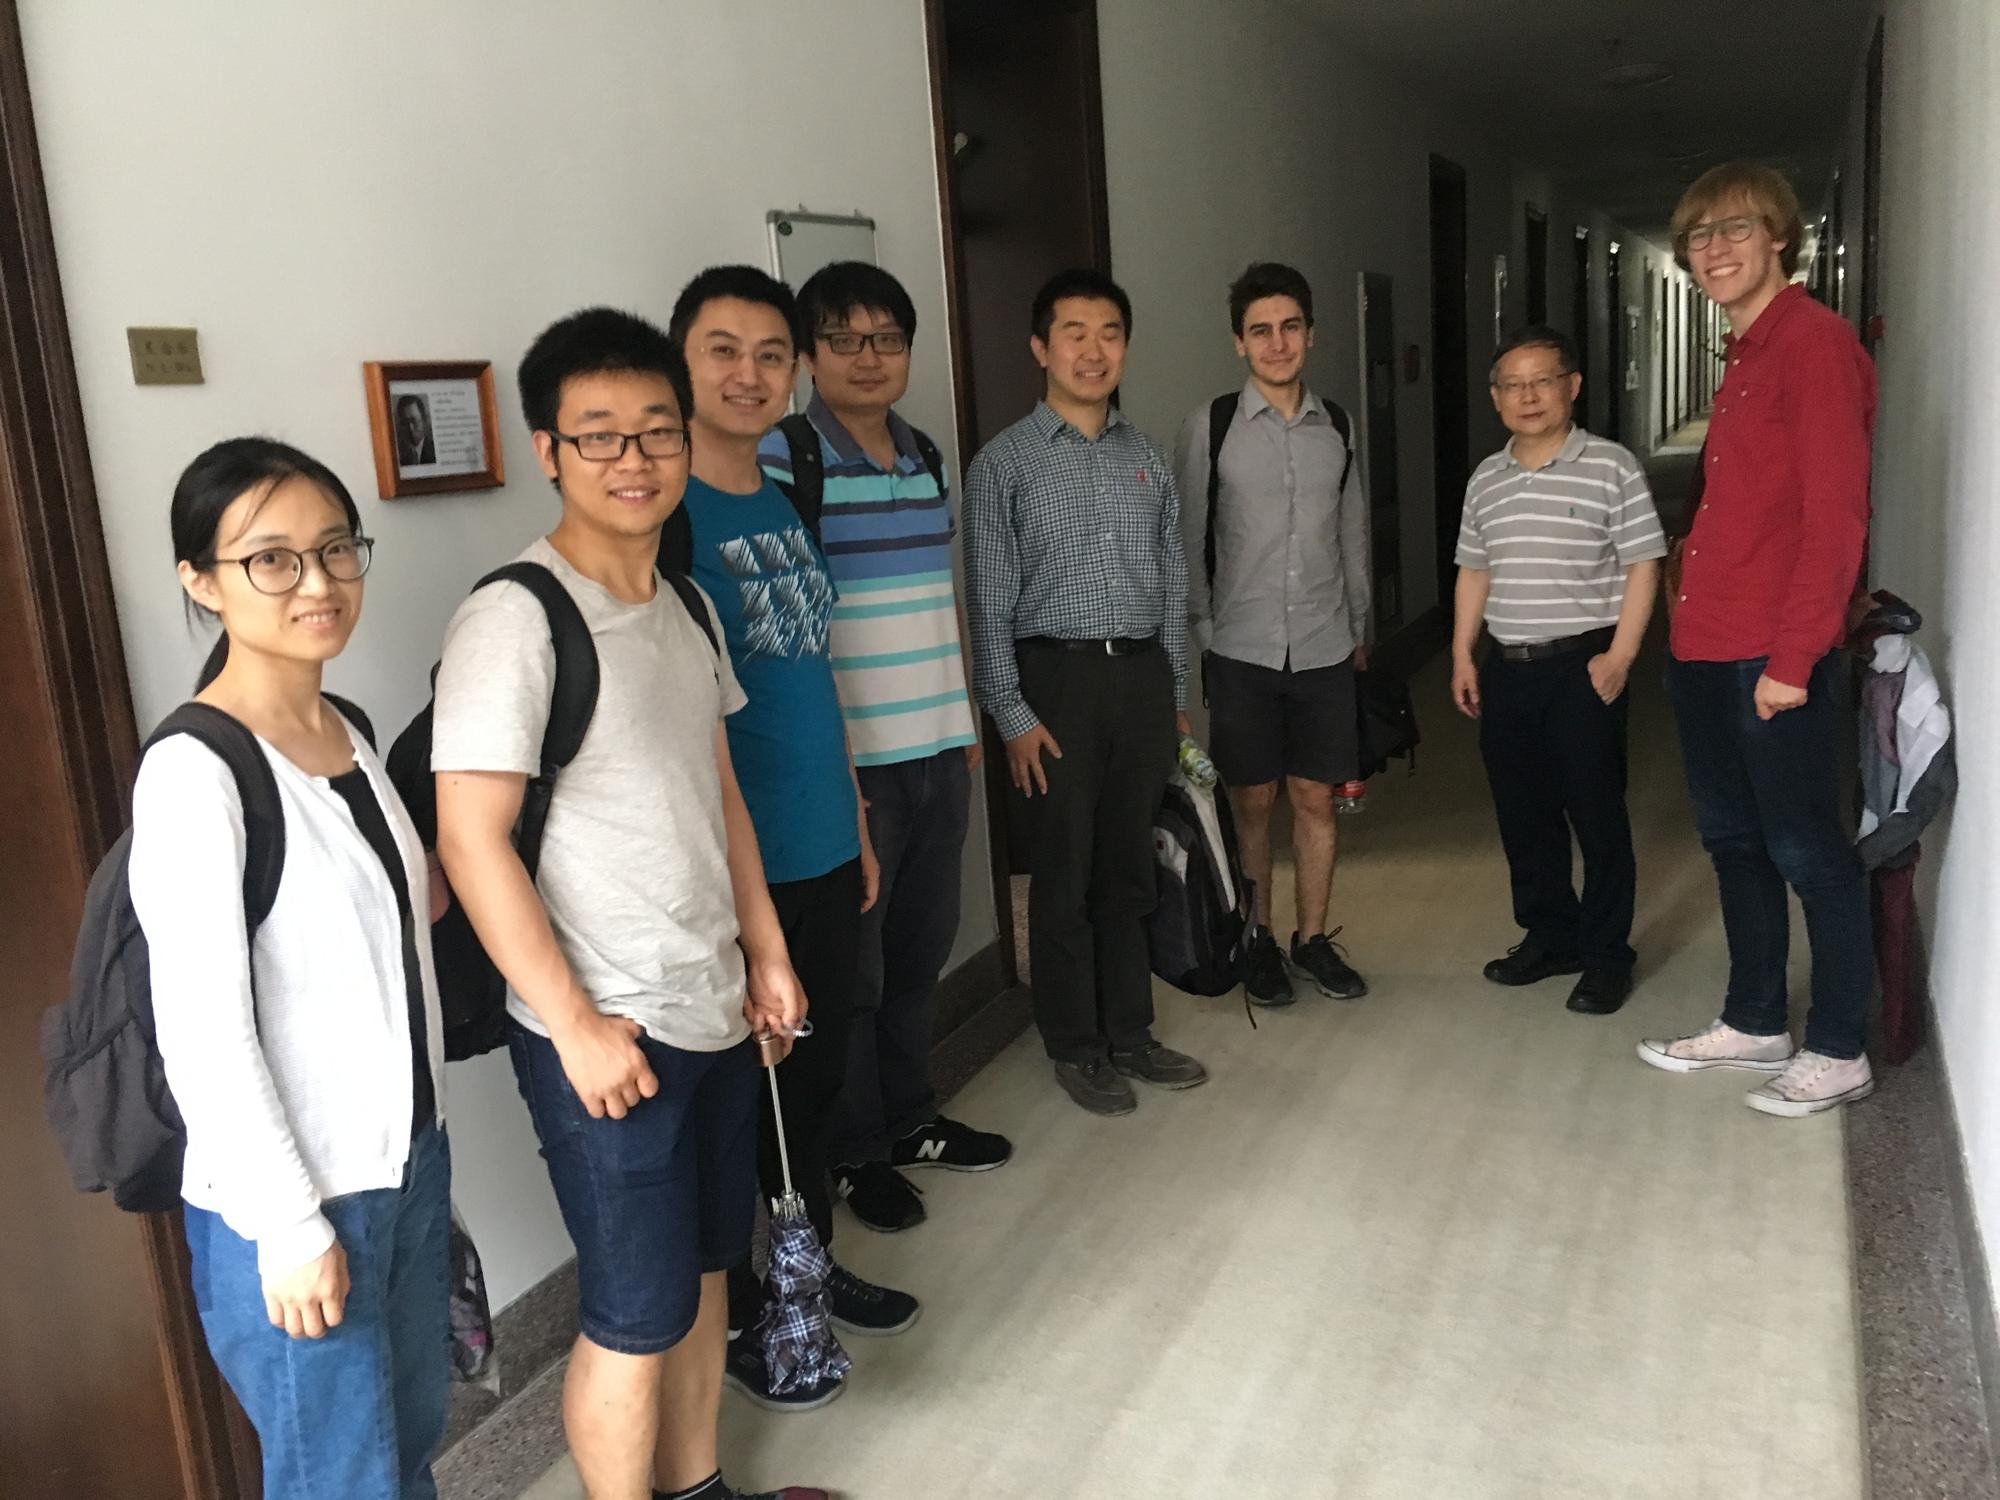 The group during our visit to Tsinghua University's Institute for Advanced Study